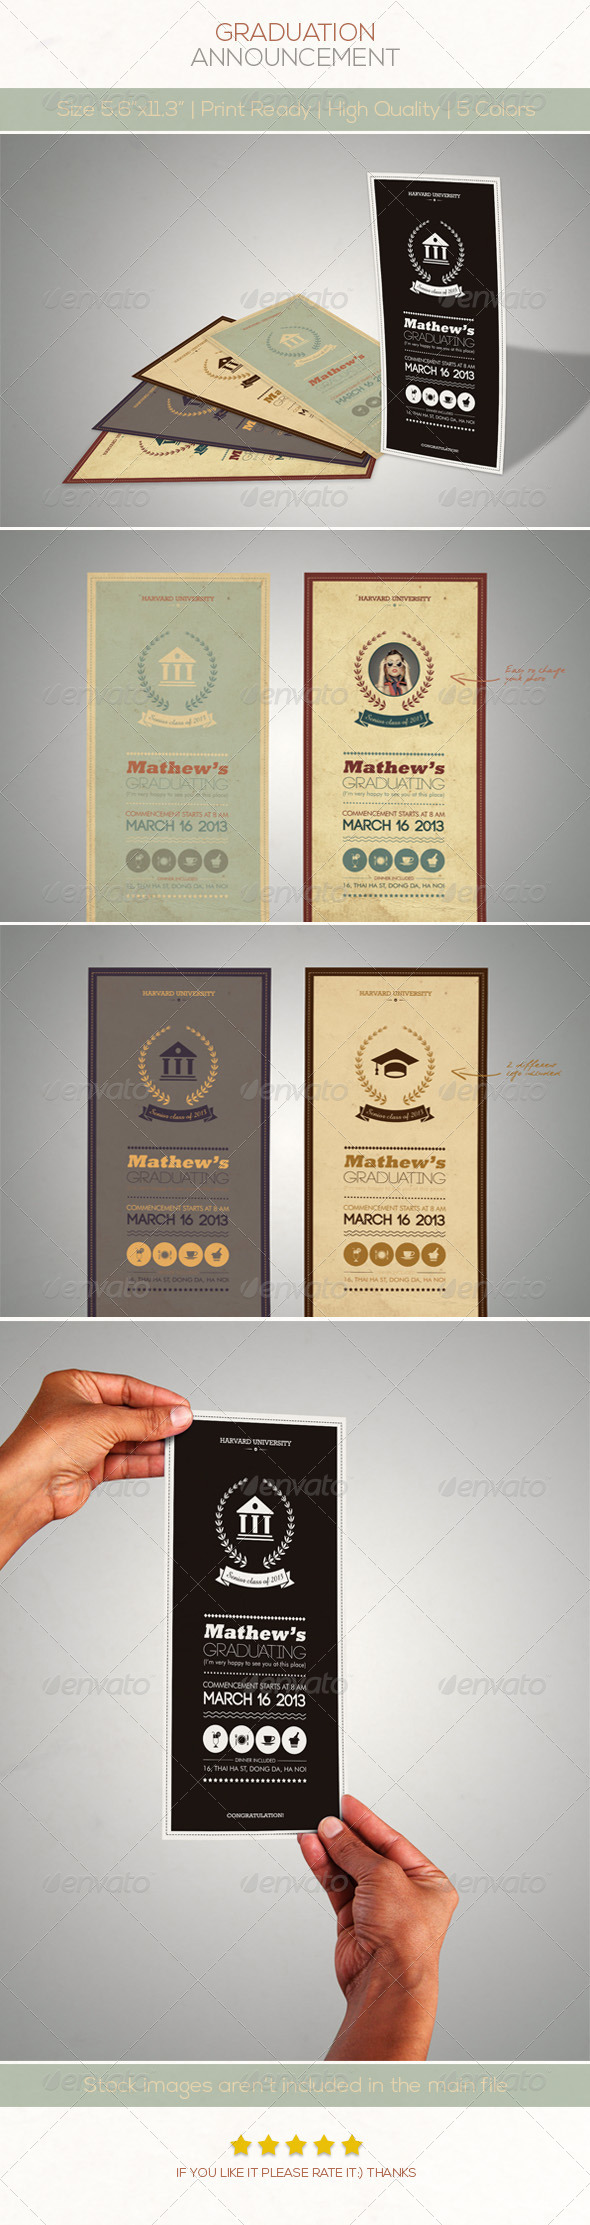 GraphicRiver Retro Graduation Announcement 4746835